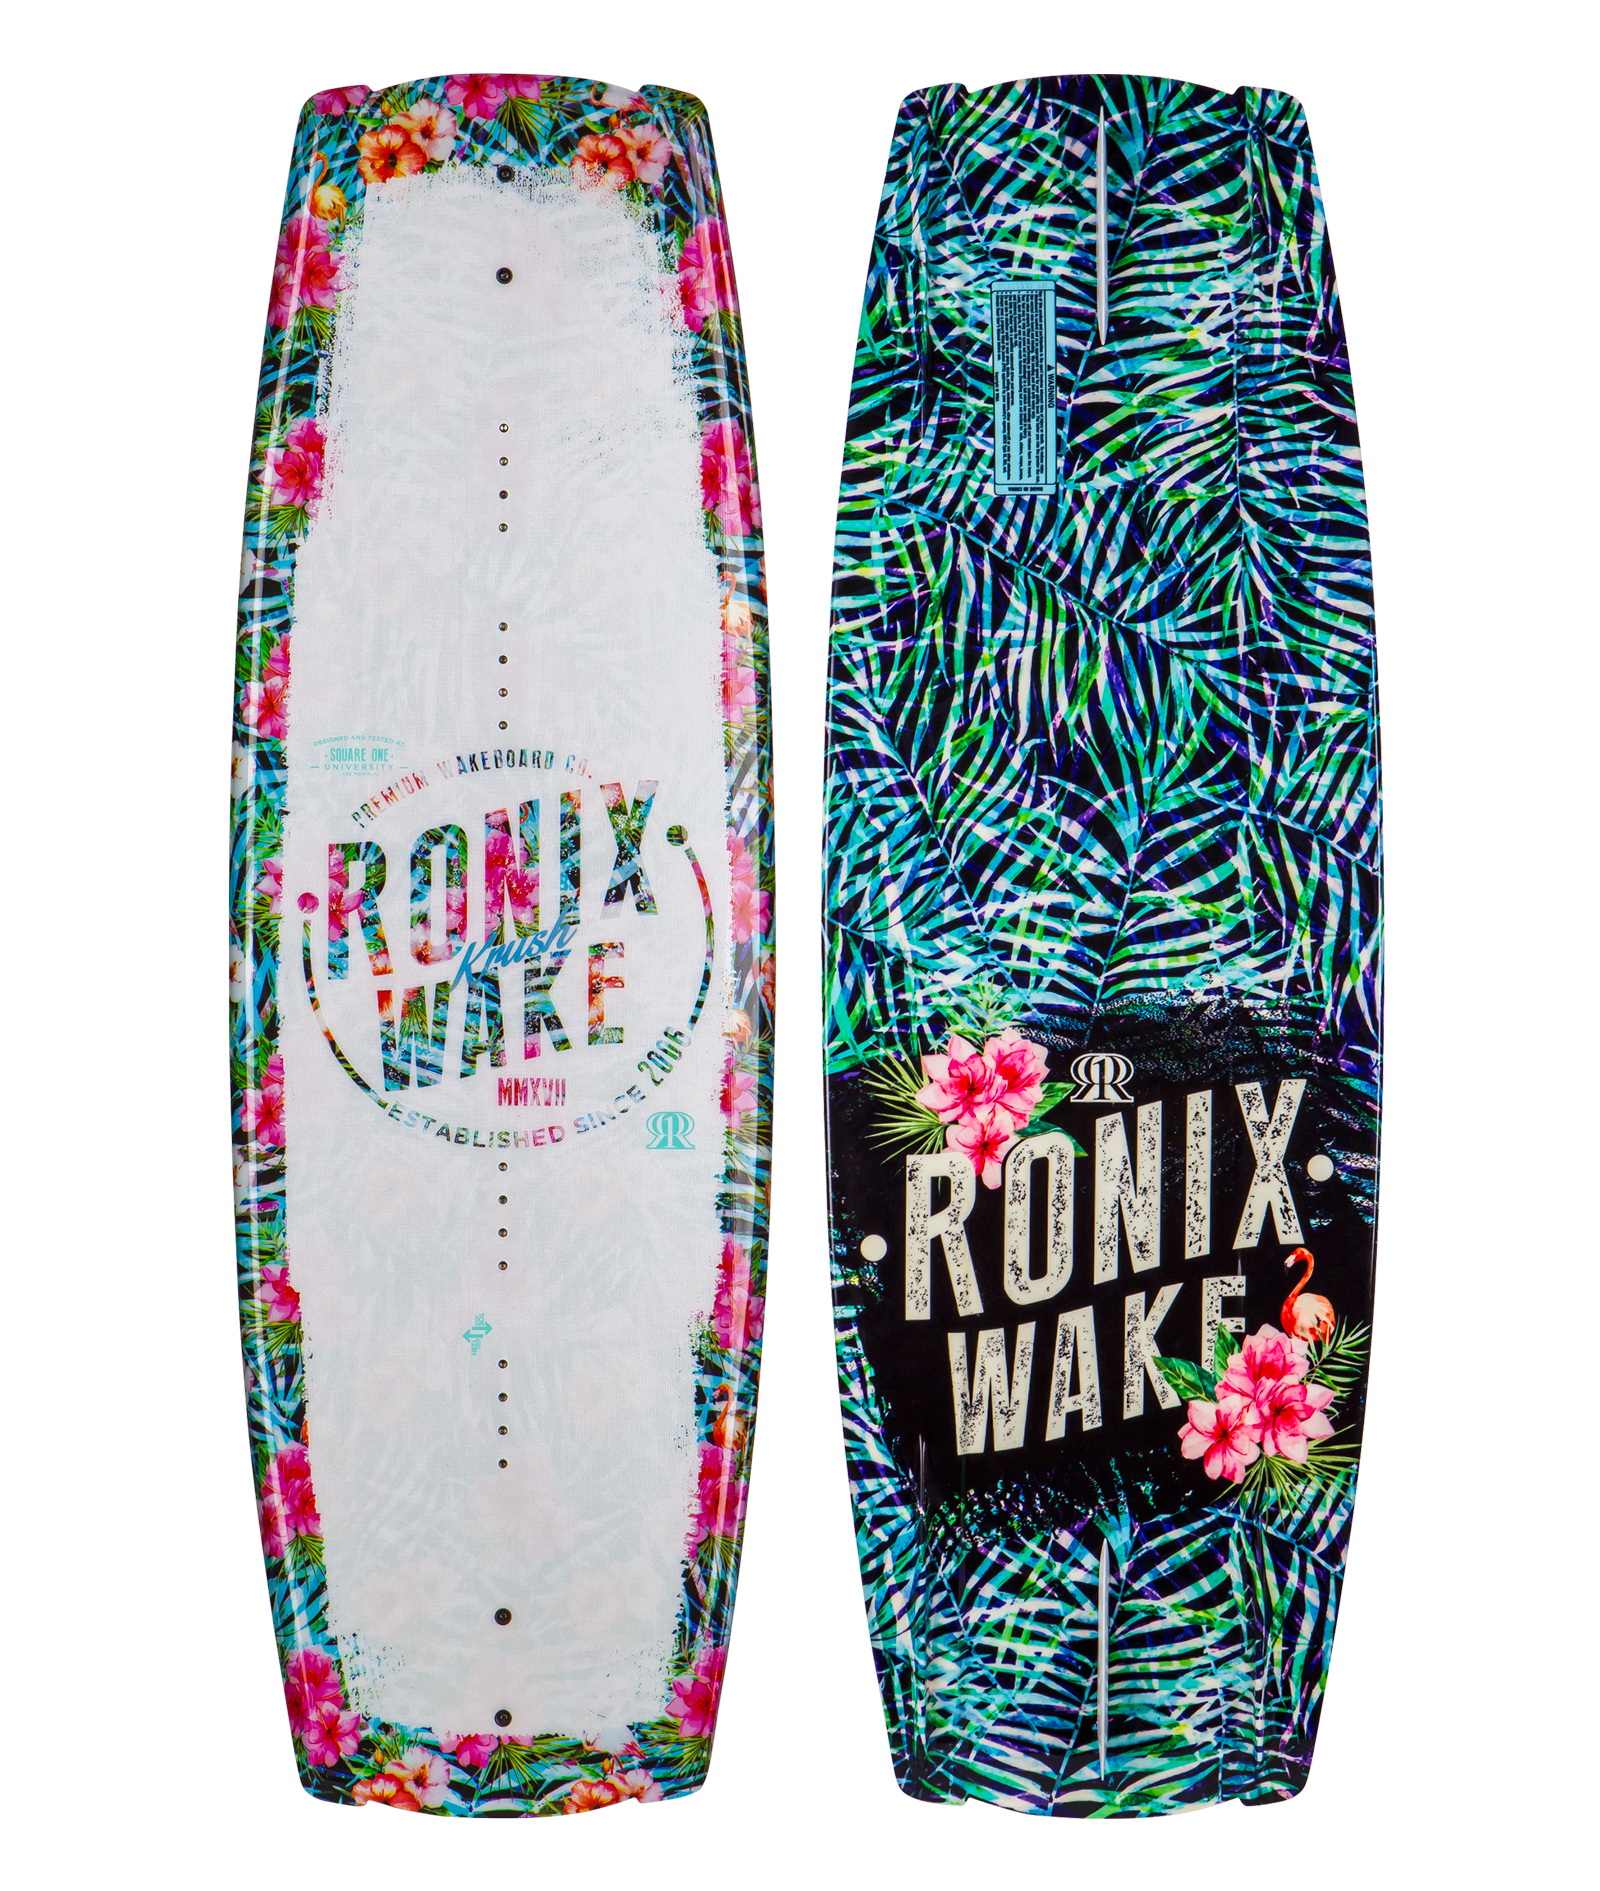 KRUSH WAKEBOARD RONIX 2017